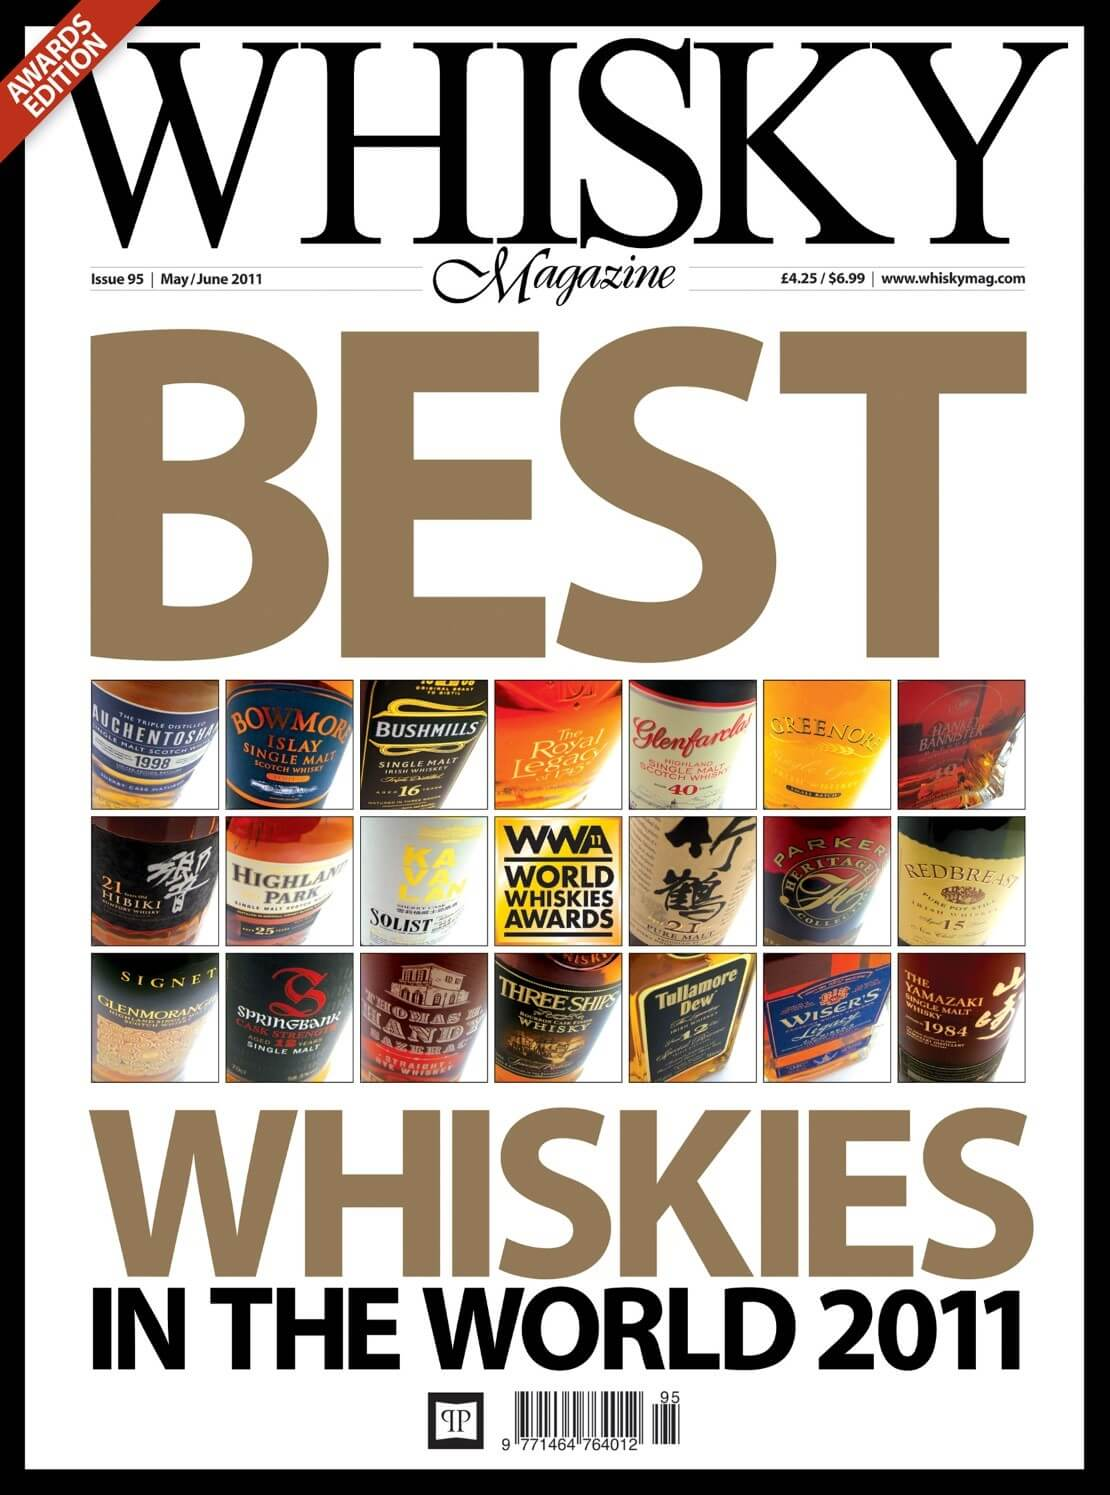 World Whiskies Awards winners Japanese drinking habits Loch Lomond Distillery Off the trail in Louisville